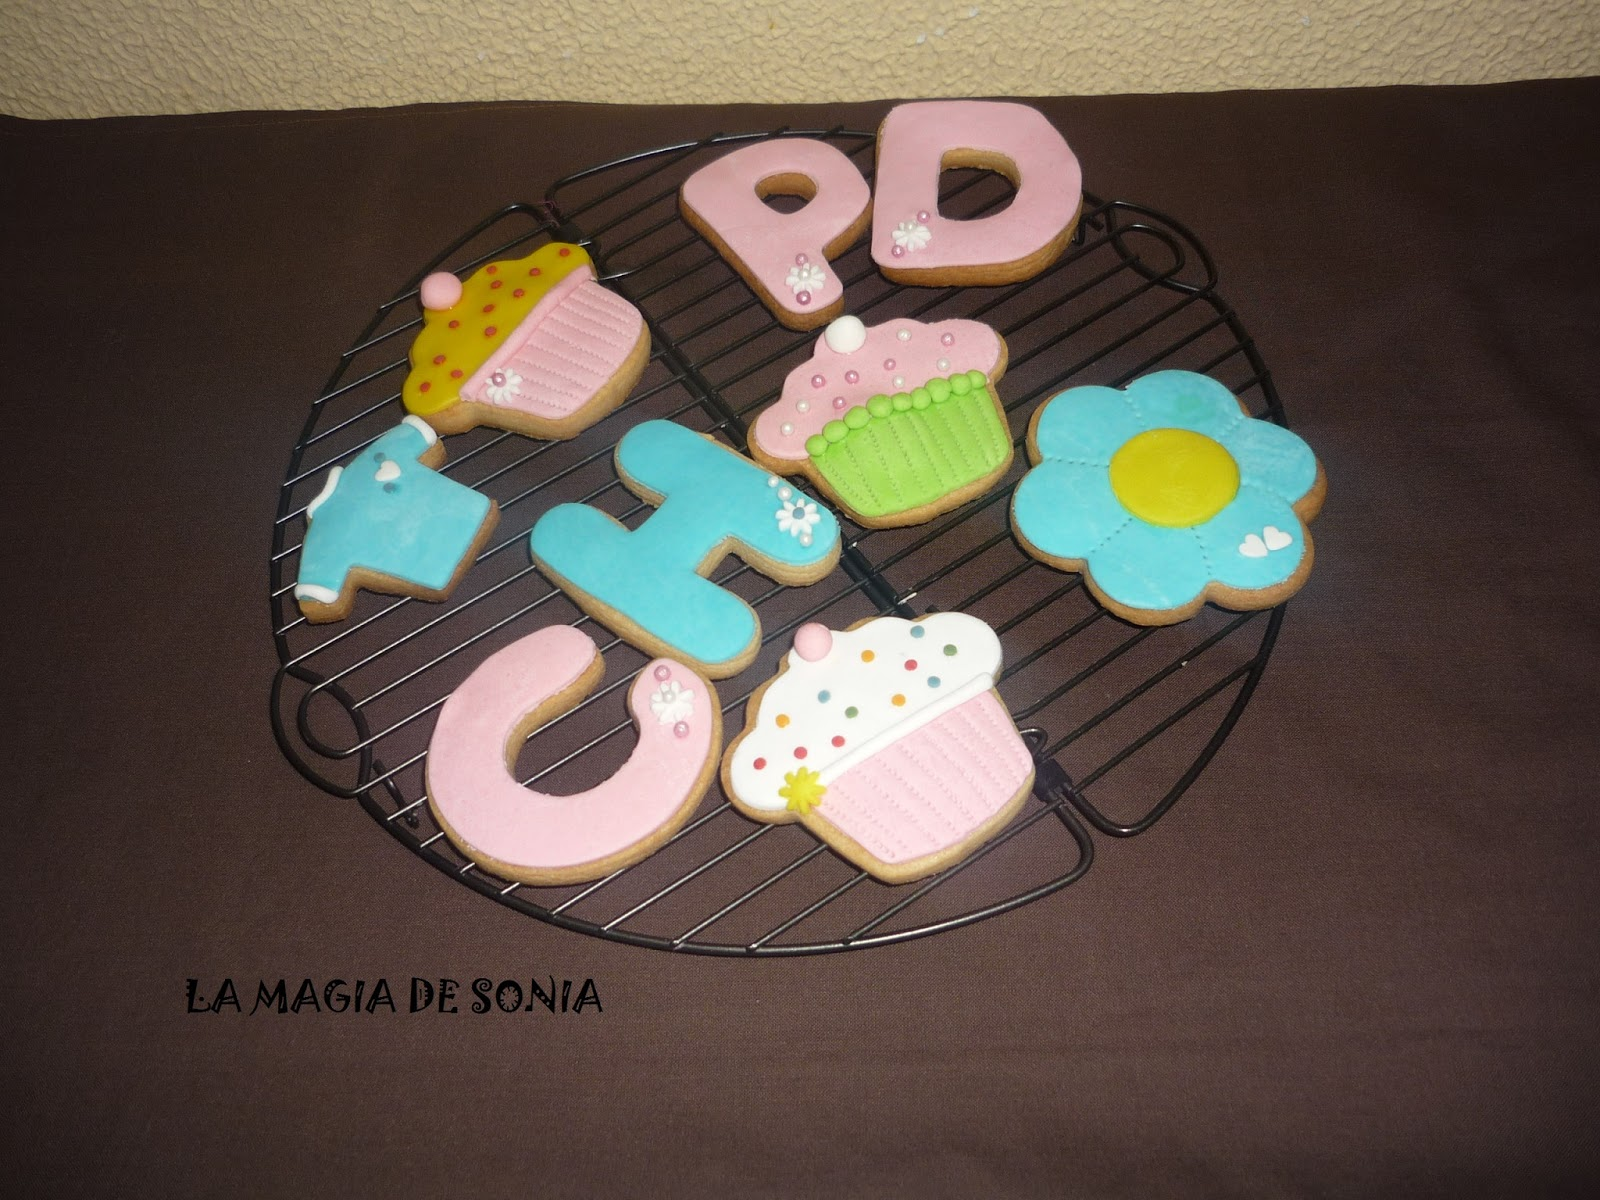 Masa Para Galletas Decoradas La Magia De Sonia Galletas Decoradas Masa De Galletas